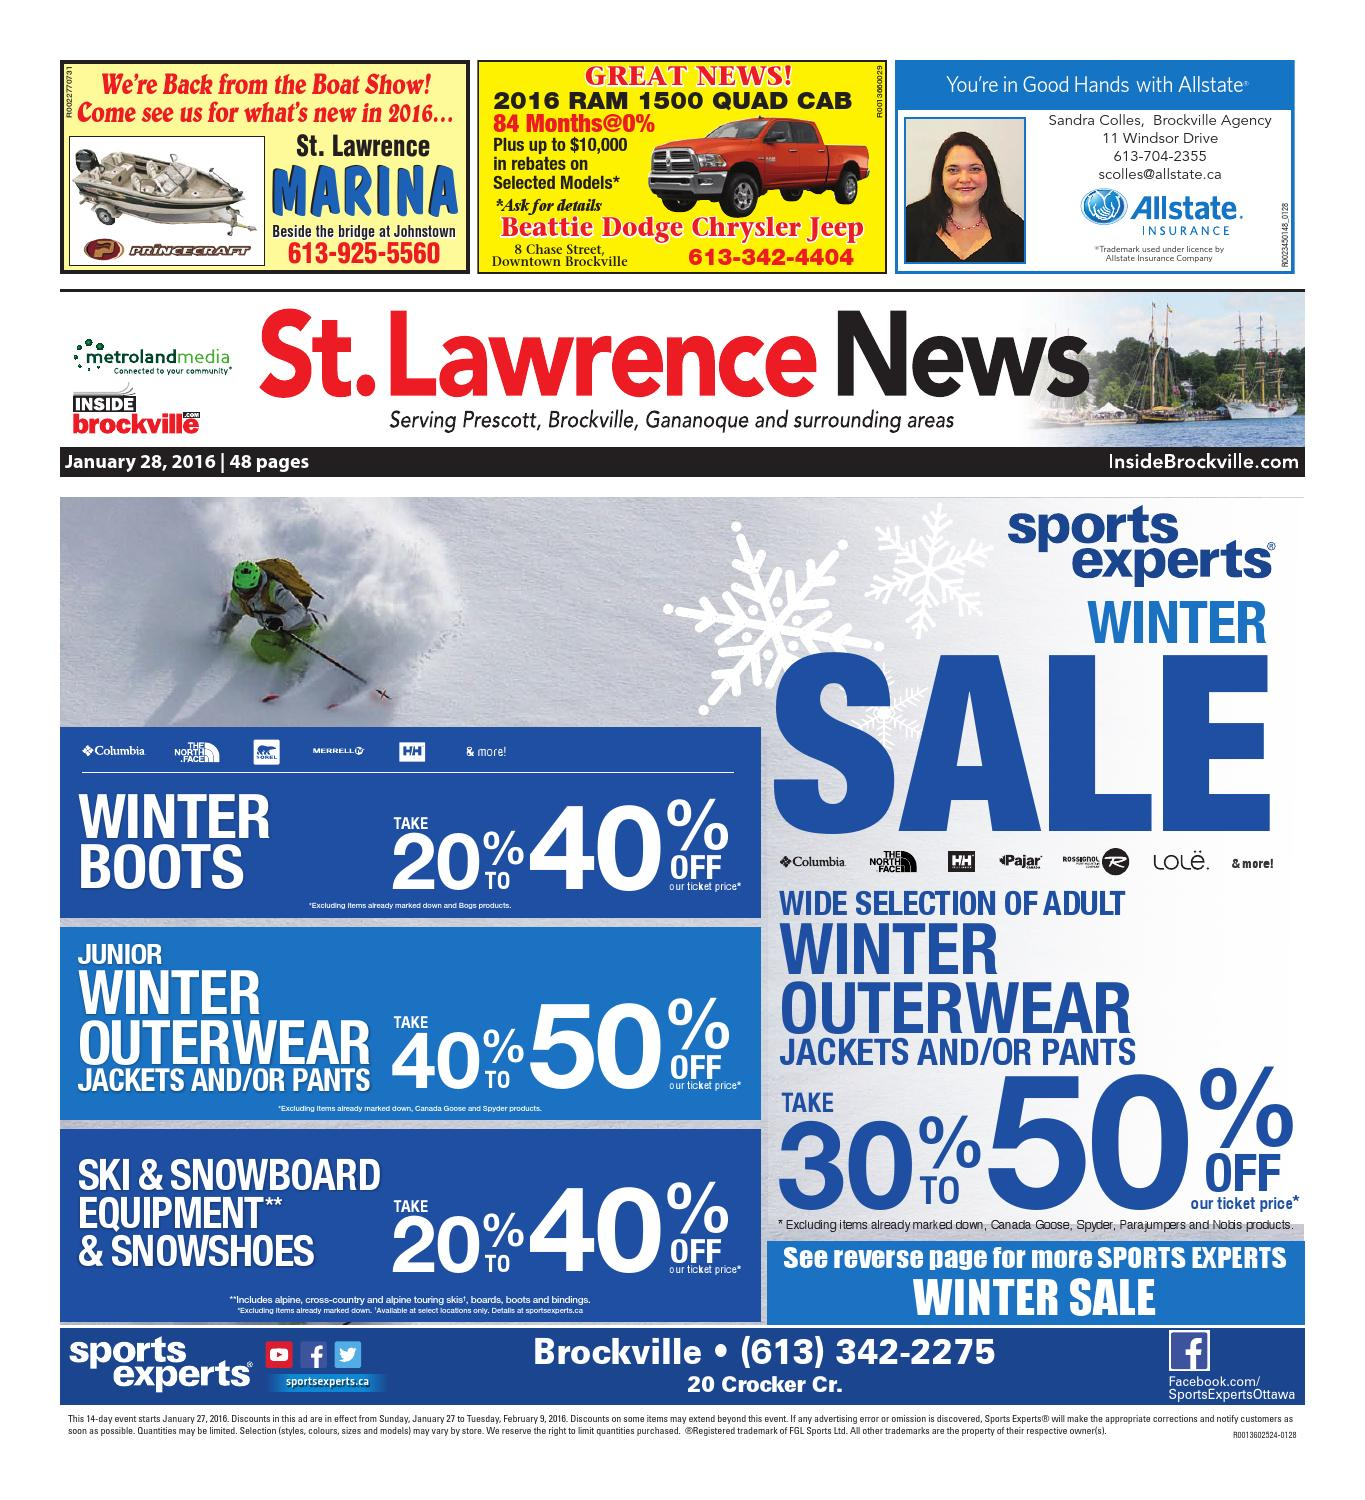 2a127e062f Stlawrence012816 by Metroland East - St. Lawrence News - issuu